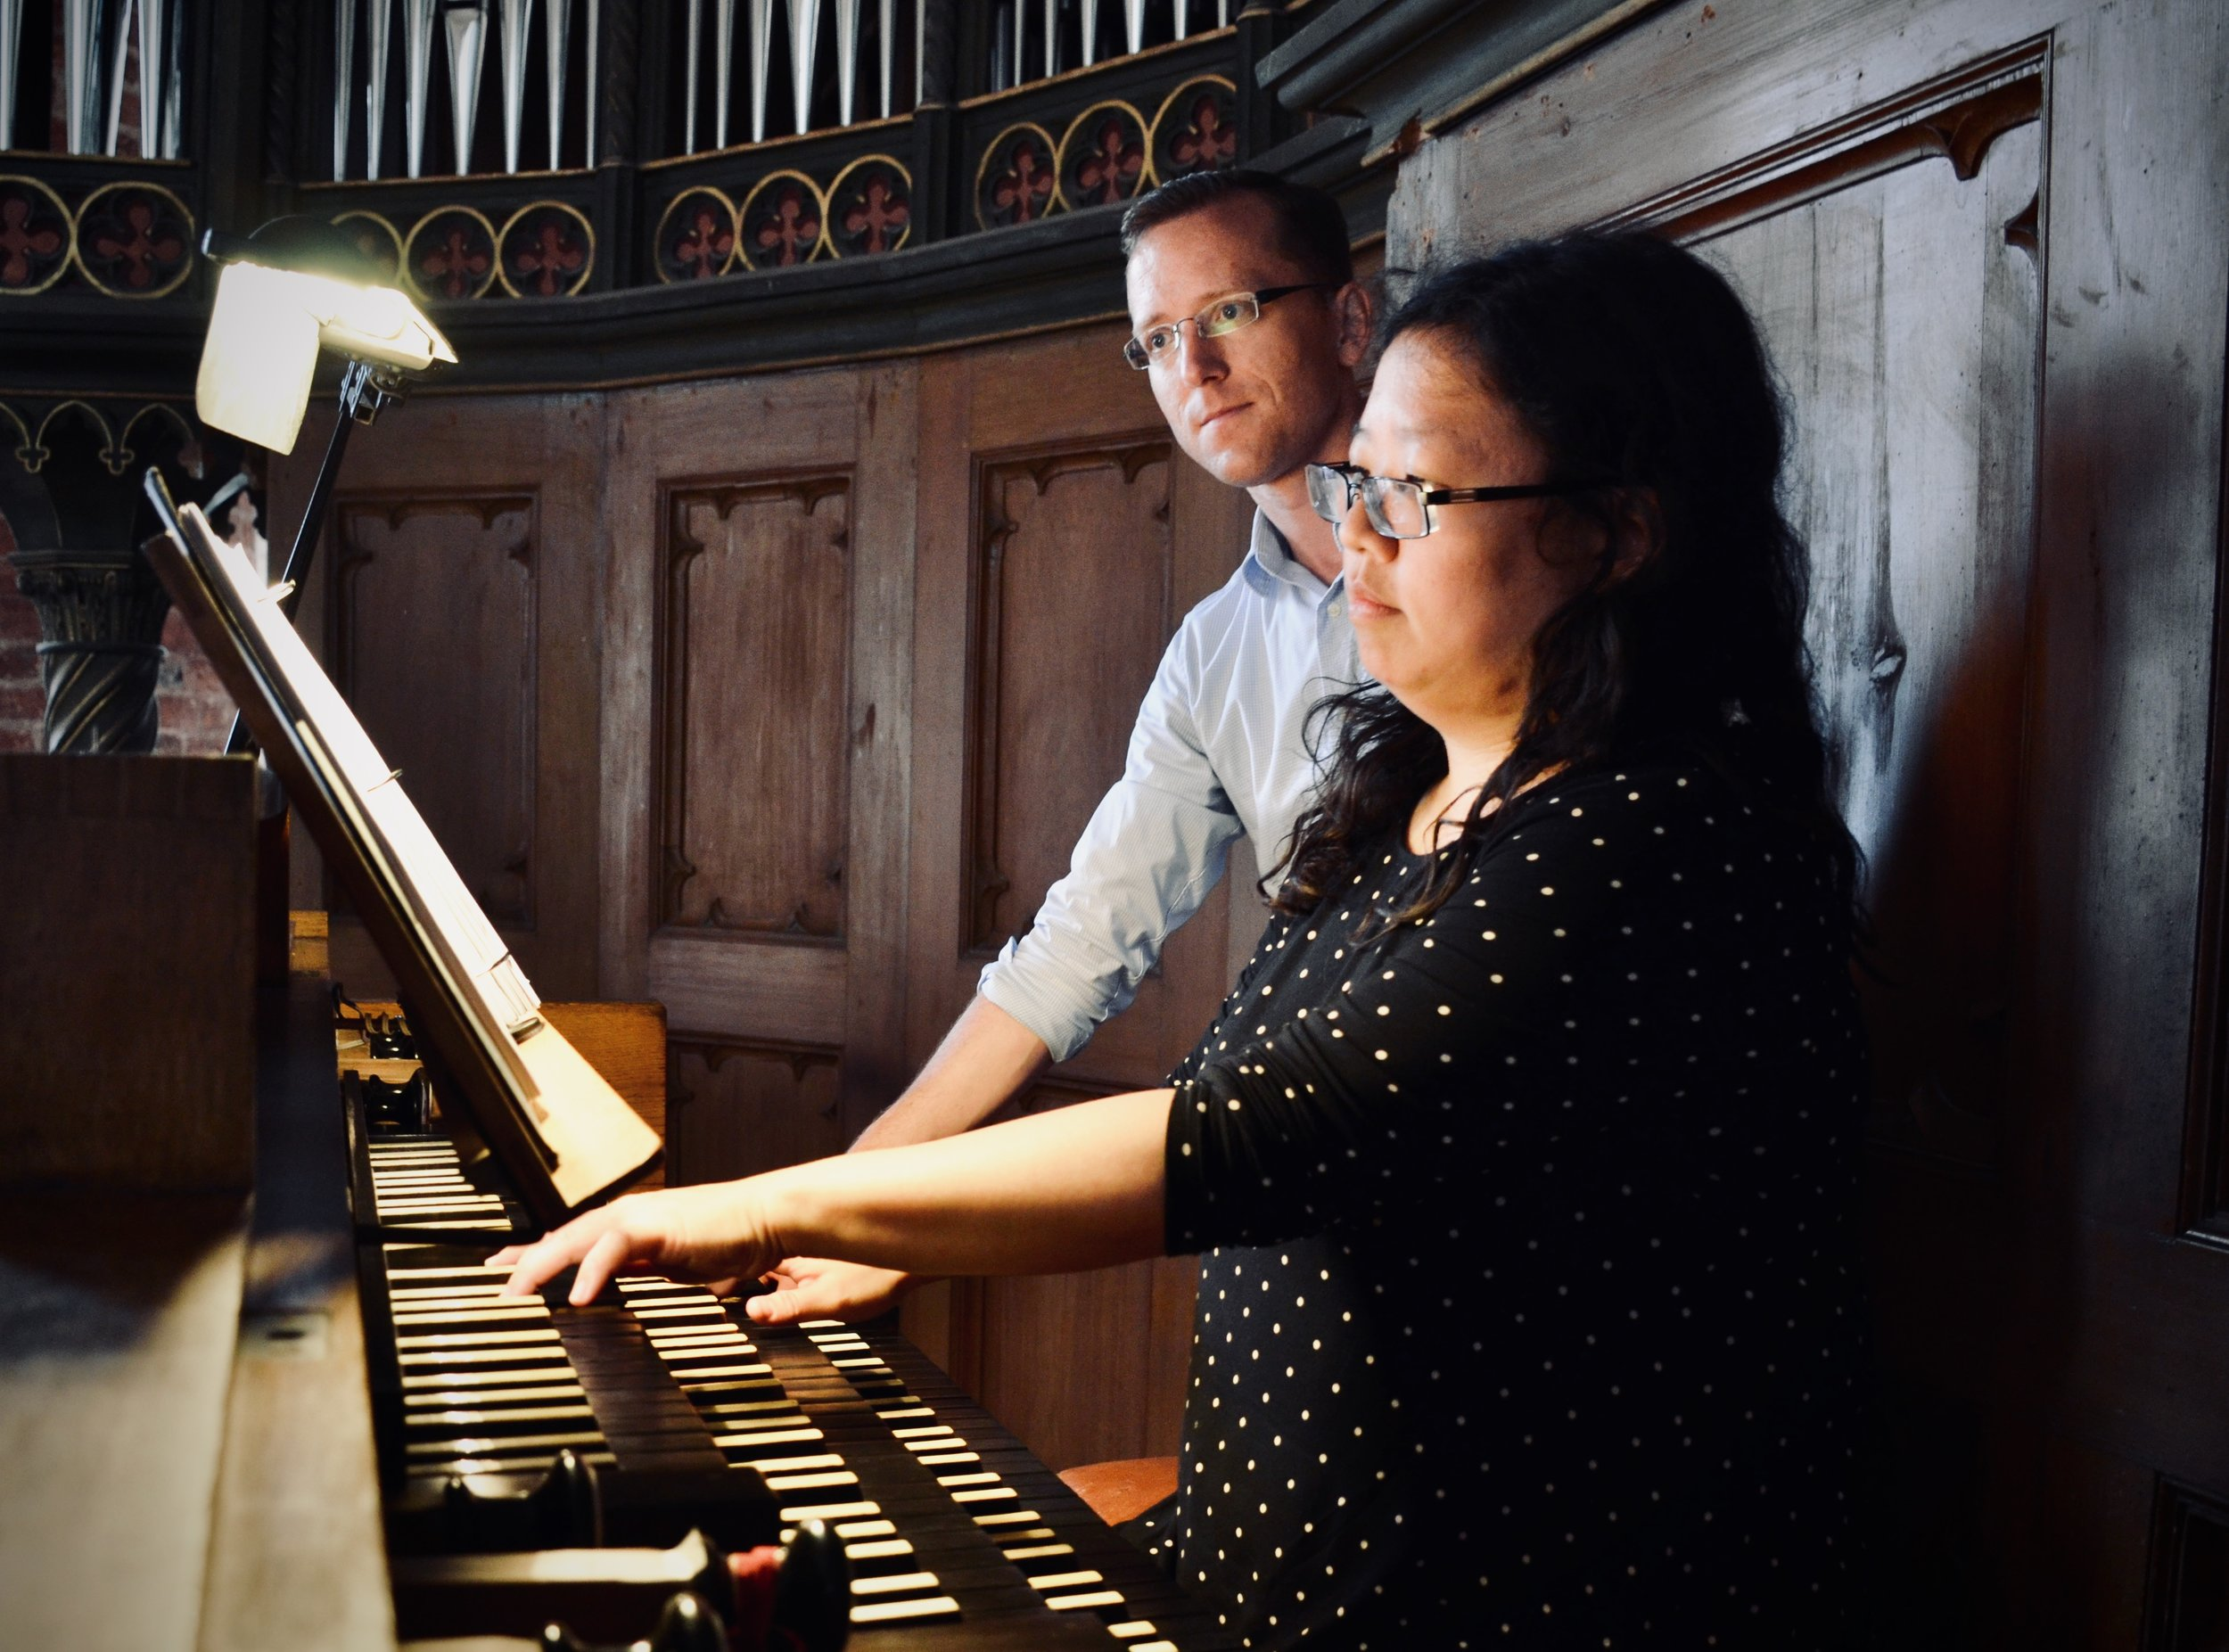 Jennifer Hsiao plays the 1867 Lütkemüller Organ, St. Petri-Kirche, Seehausen, as Christian Lane assists.